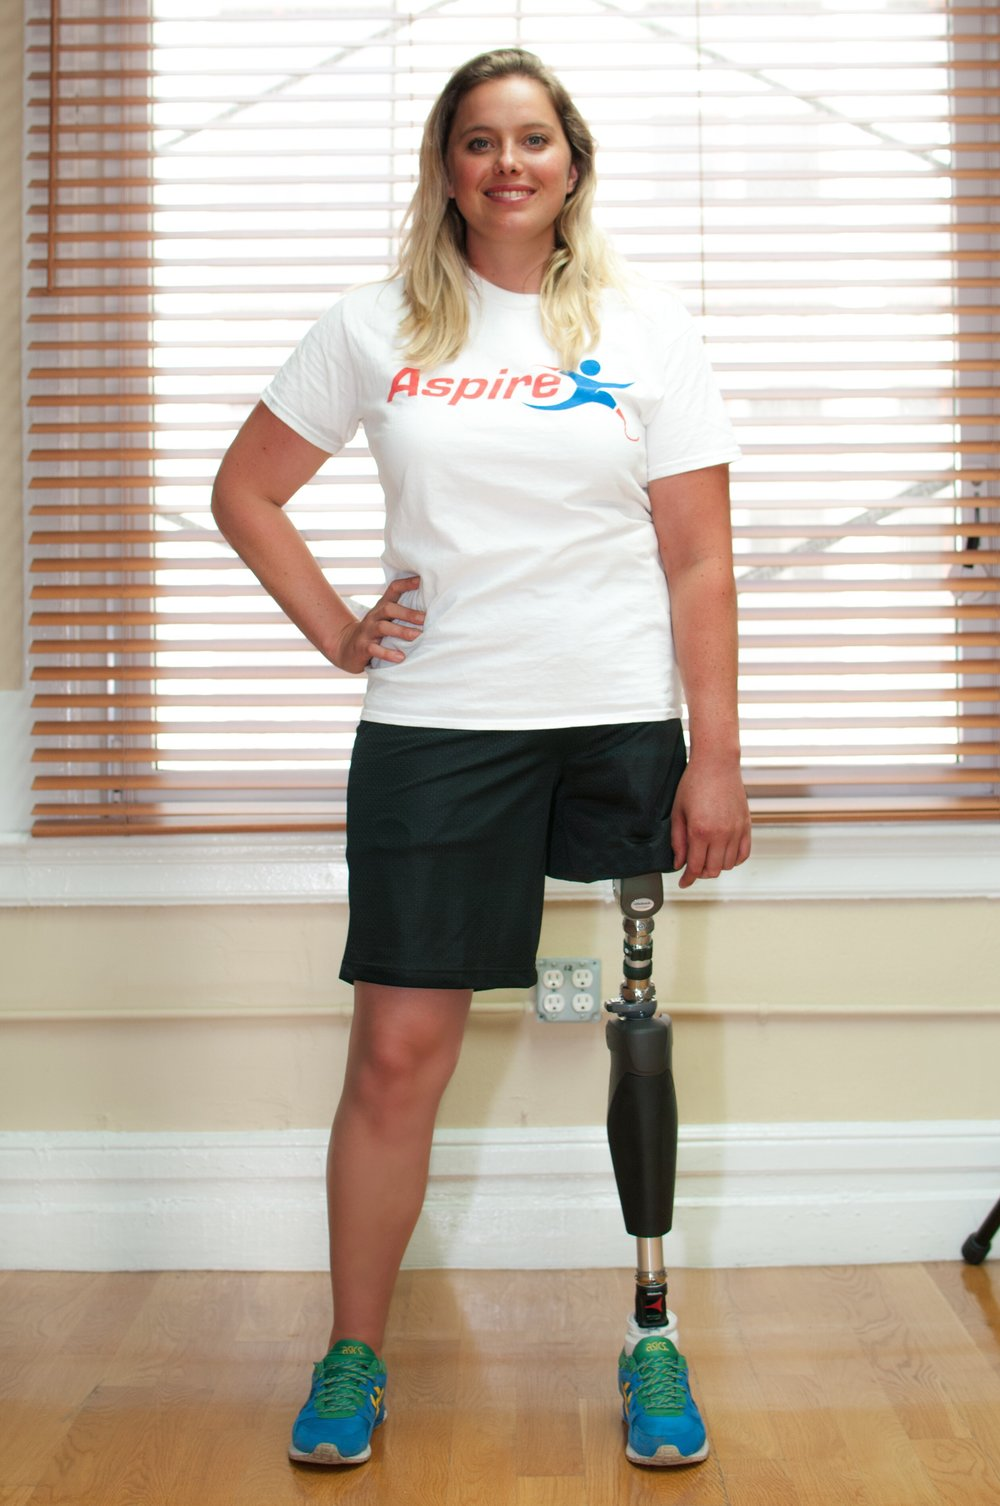 Emily - At 11 years old Emily was diagnosed with Cancer and as a result had her left leg amputated at the hip. We provided Emily with her prosthesis allowing her to walk independently. Emily s also a 3 Paralympian and was the first Paraclimber to compete at ISFC World Championships for South Africa.